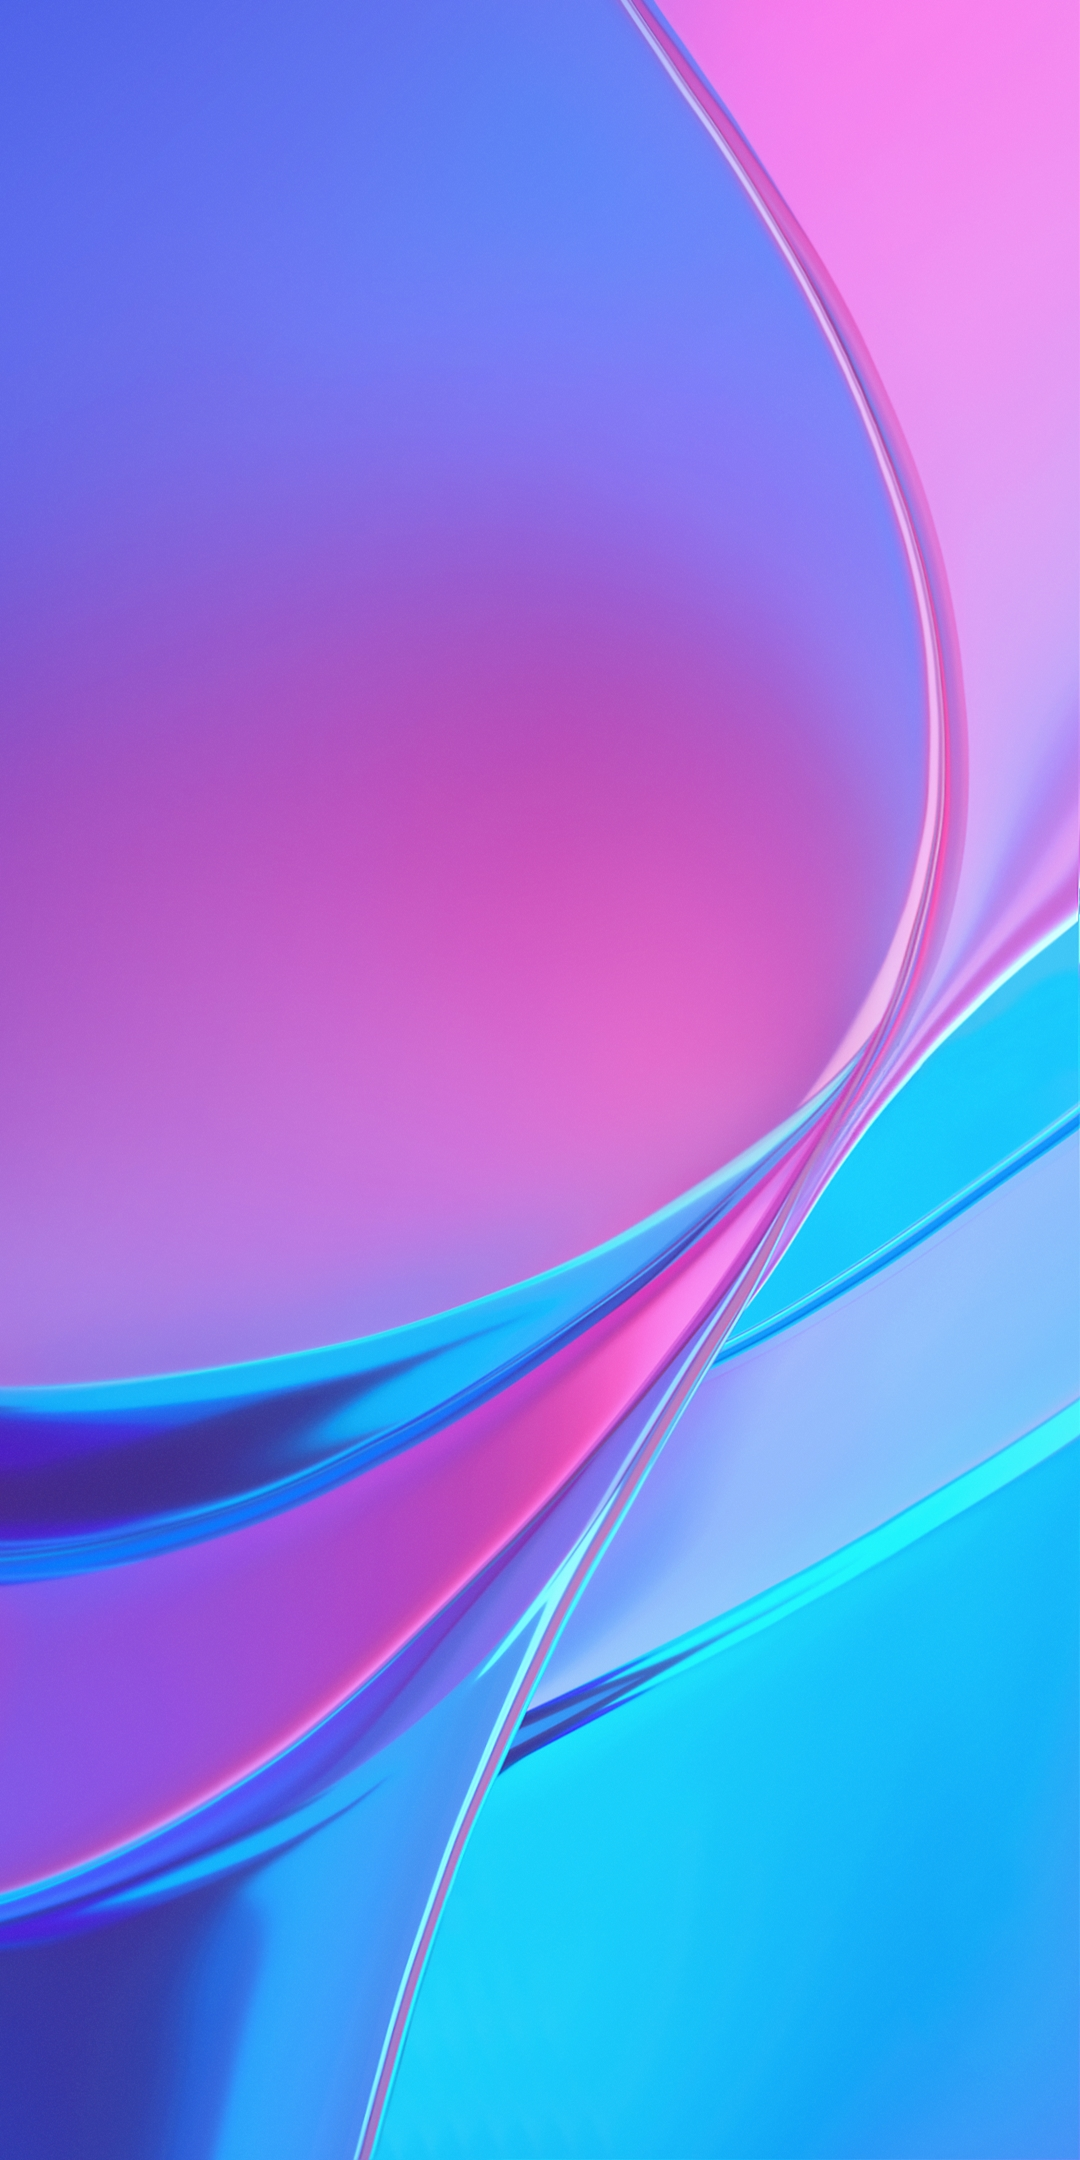 Android Xiaomi Wallpapers Wallpaper Cave